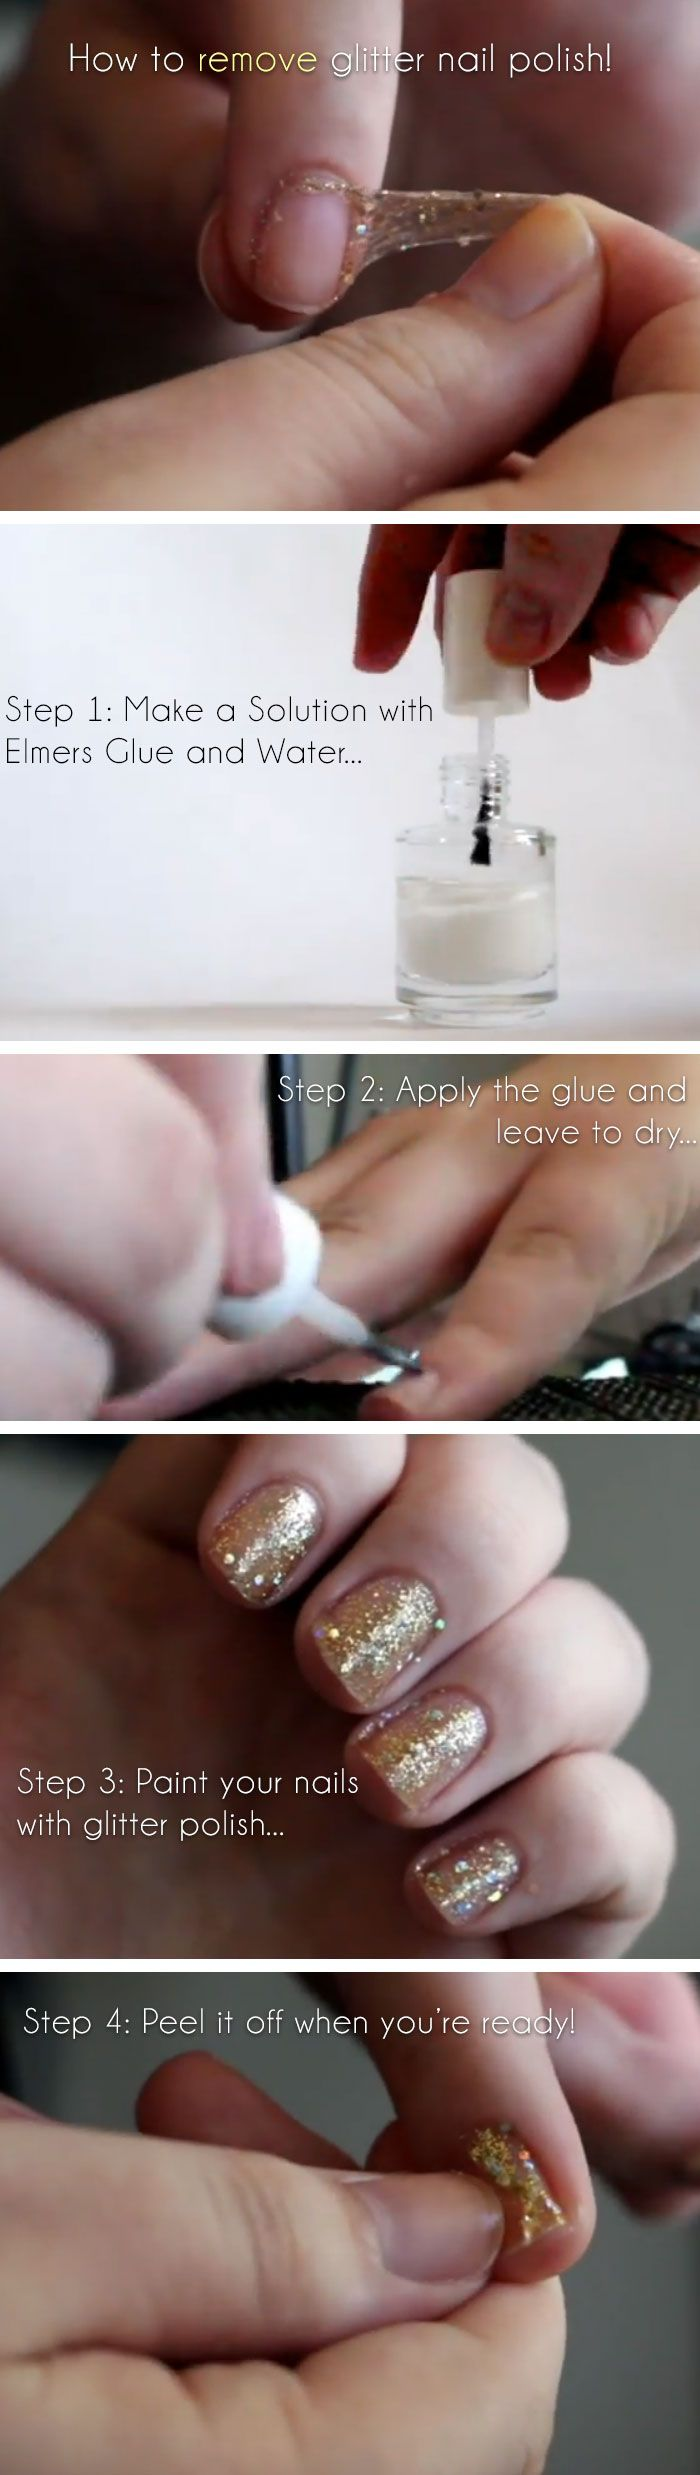 How to Remove Glitter Nail Polish Really Easily | Click Pic for 25 Simple Life Hacks Every Girl Should Know | DIY Beauty Hacks Every Girl Should Know